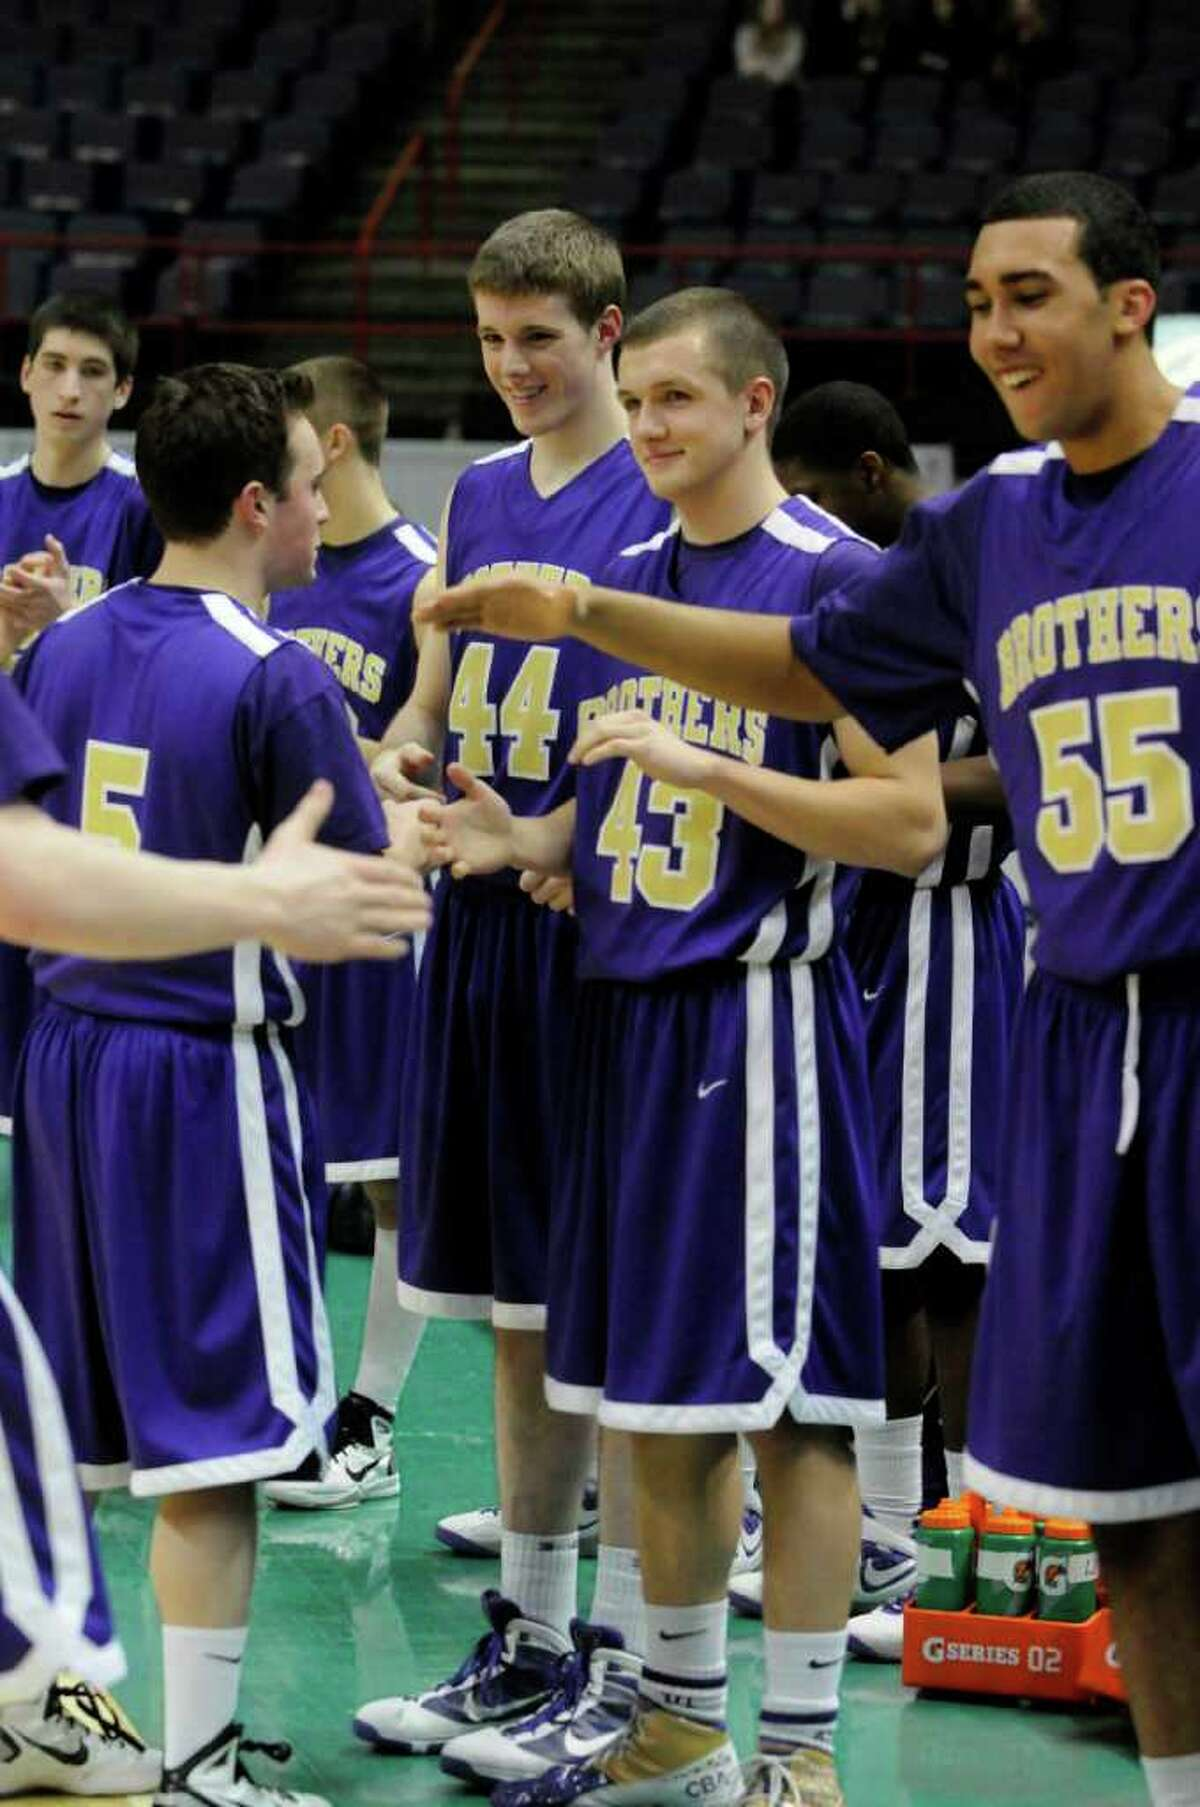 CBA boys varsity basketball team players congratulate each other,left to right, Brendan Dalcol, Chaz Lott, Max Weaver and Nate Robinson , following their Section 2 Class AA boys basketball finals win 69-46 over Bishop Maginn at the Times Union Center in Albany Tuesday March 8, 2011.( Michael P. Farrell/Times Union )